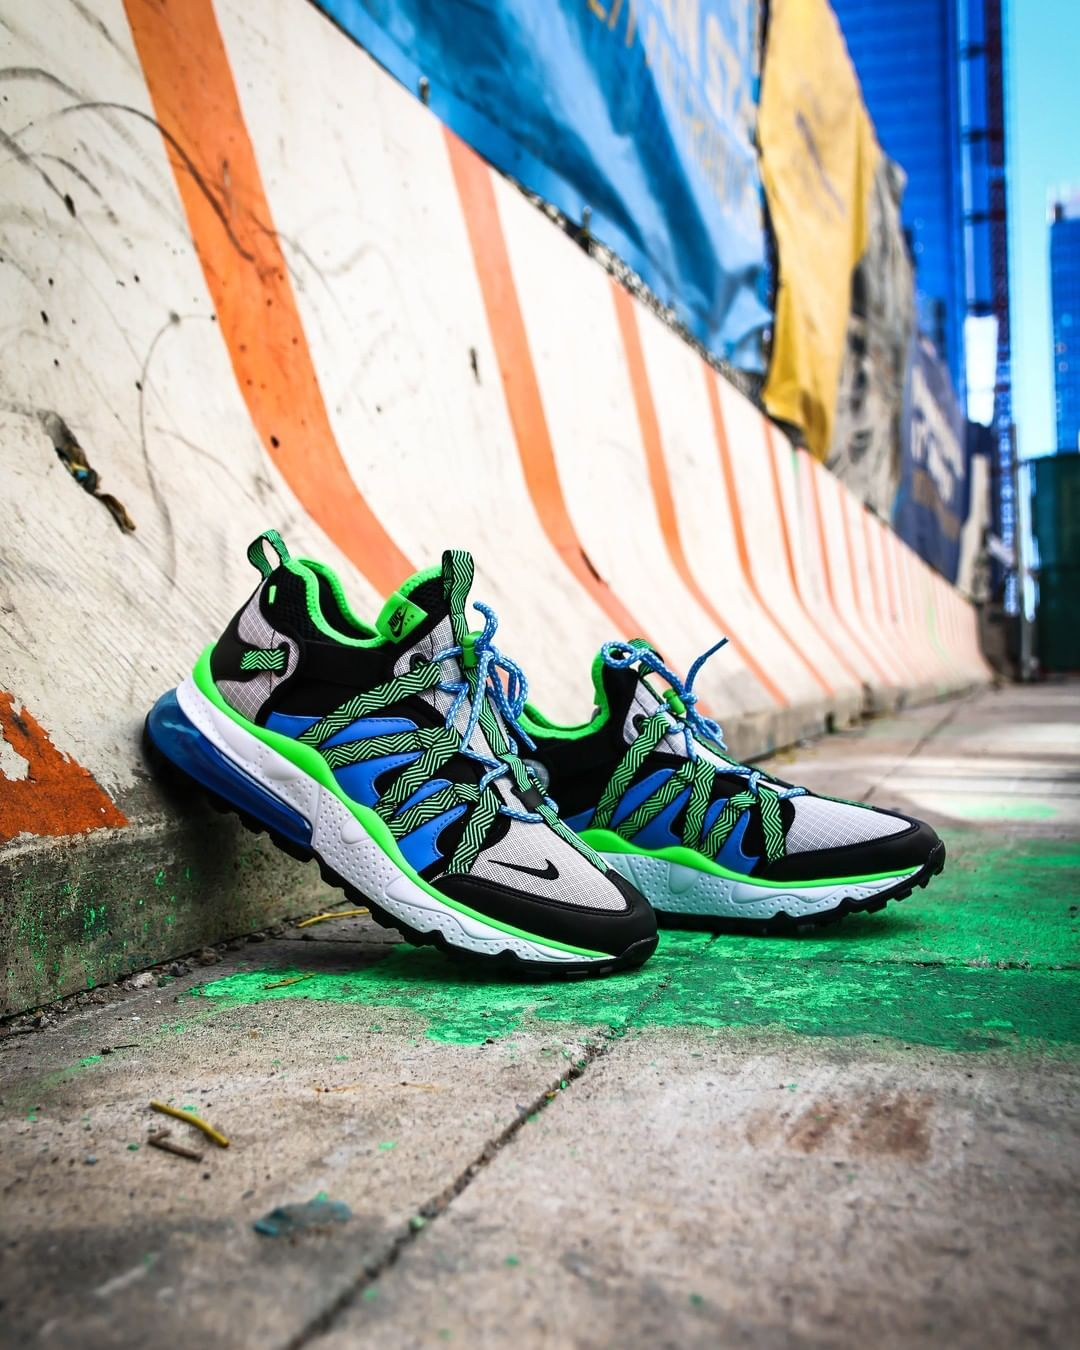 52b50640db Nike Air Max 270 Bowfin | Sneakers: Nike Air Max 270 | Air max 270 ...